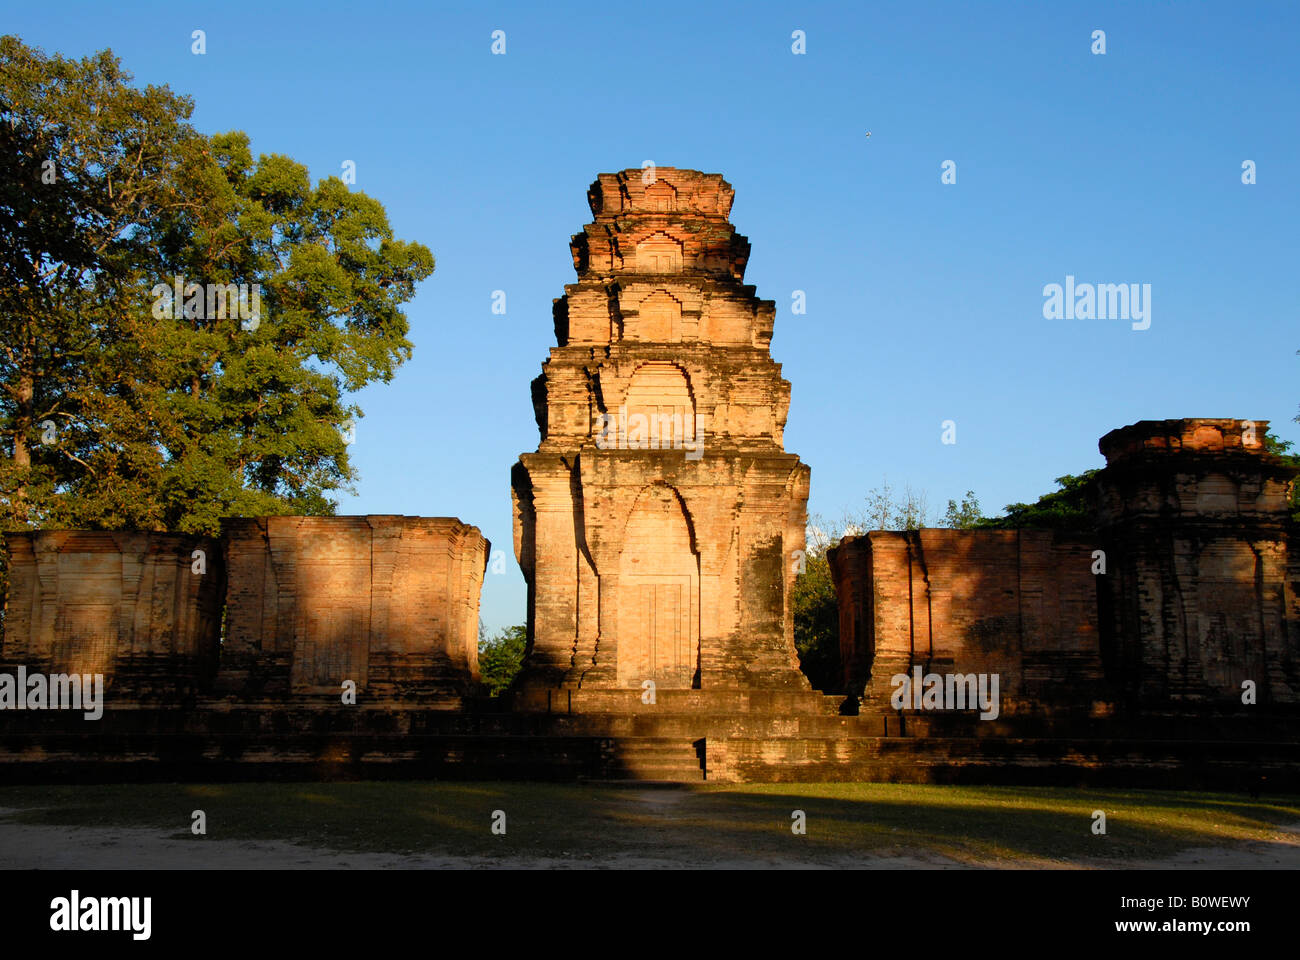 Ancient Khmer temple in the evening light, Angkor, Cambodia, Southeast Asia Stock Photo